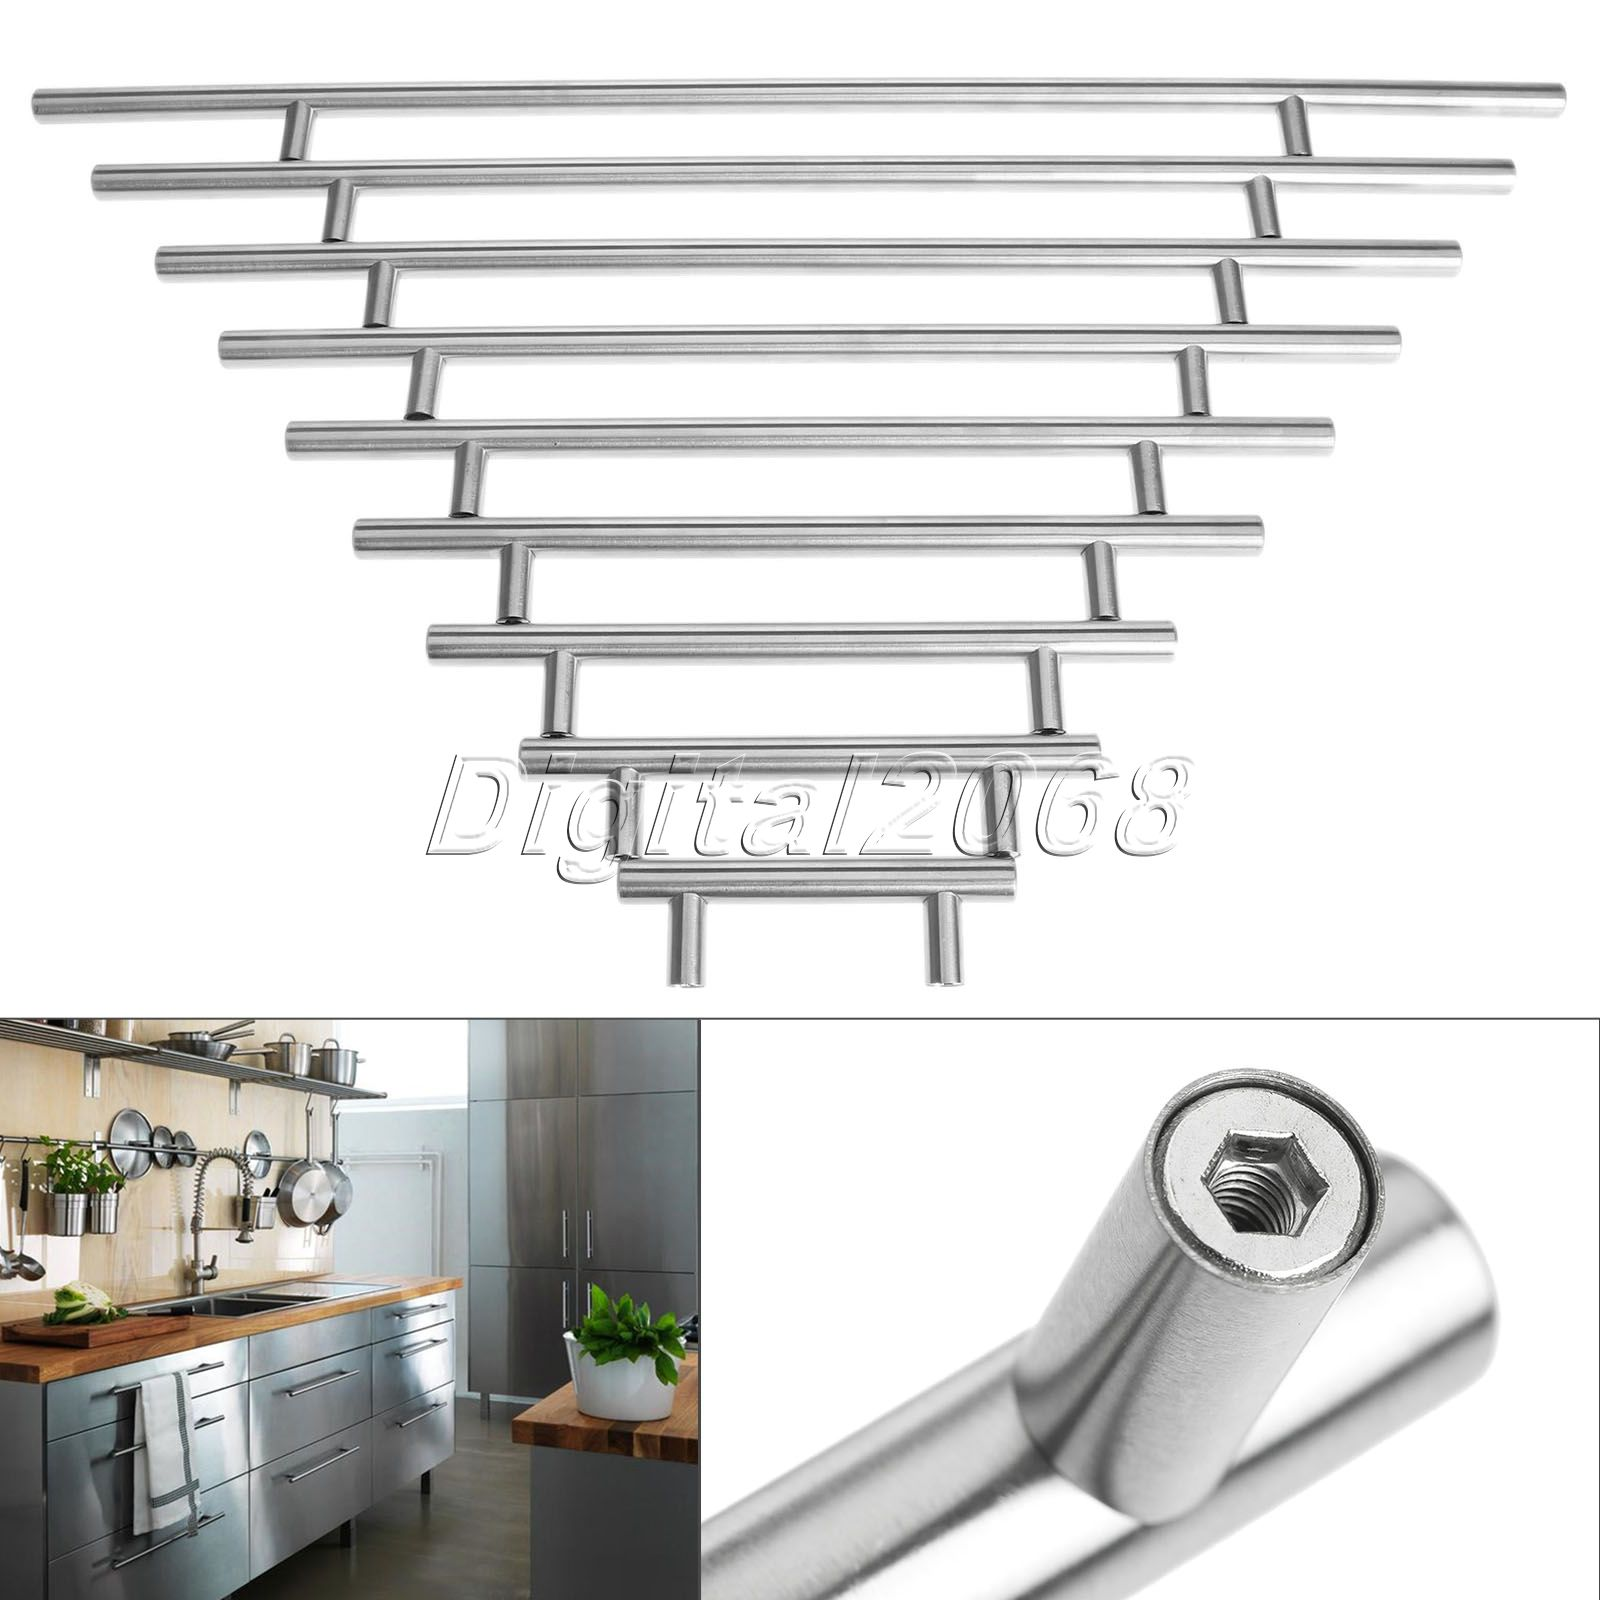 discount kitchen knobs and pulls 30 inch sink hot 12mm furniture hardware stainless steel t bar ...